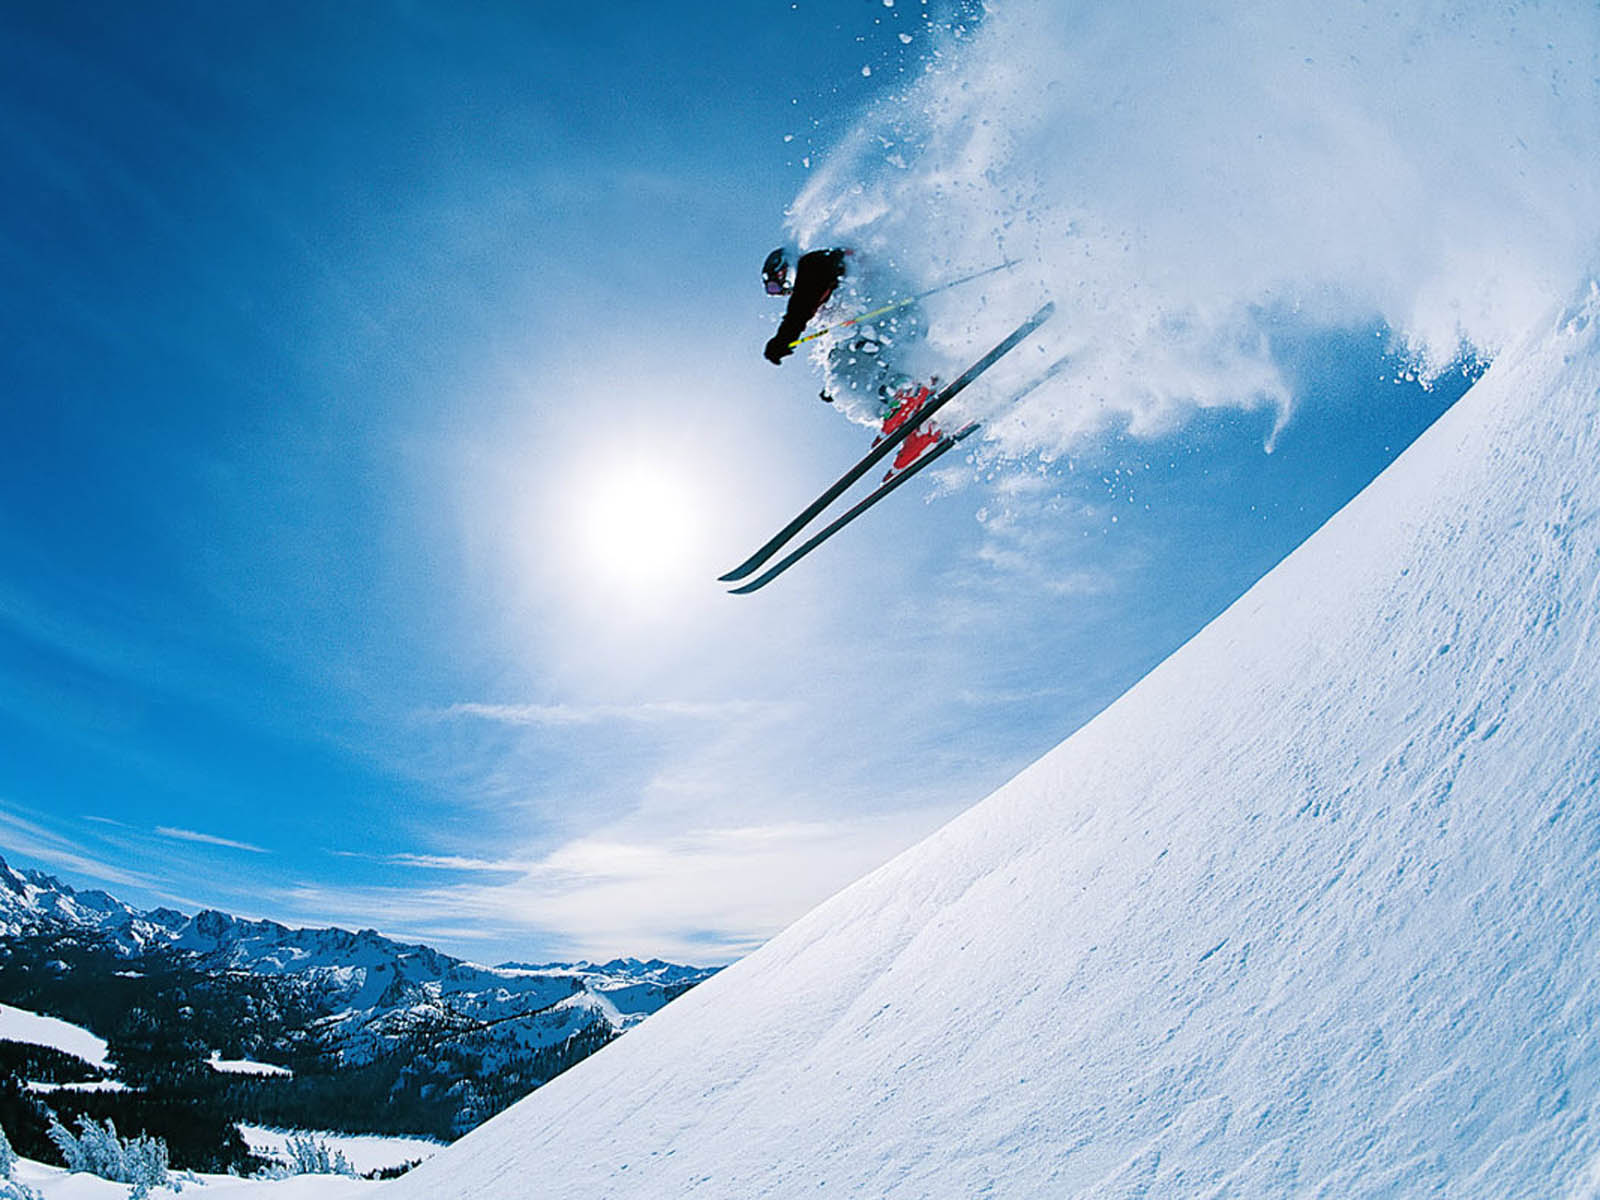 Wallpapers: Free Skiing